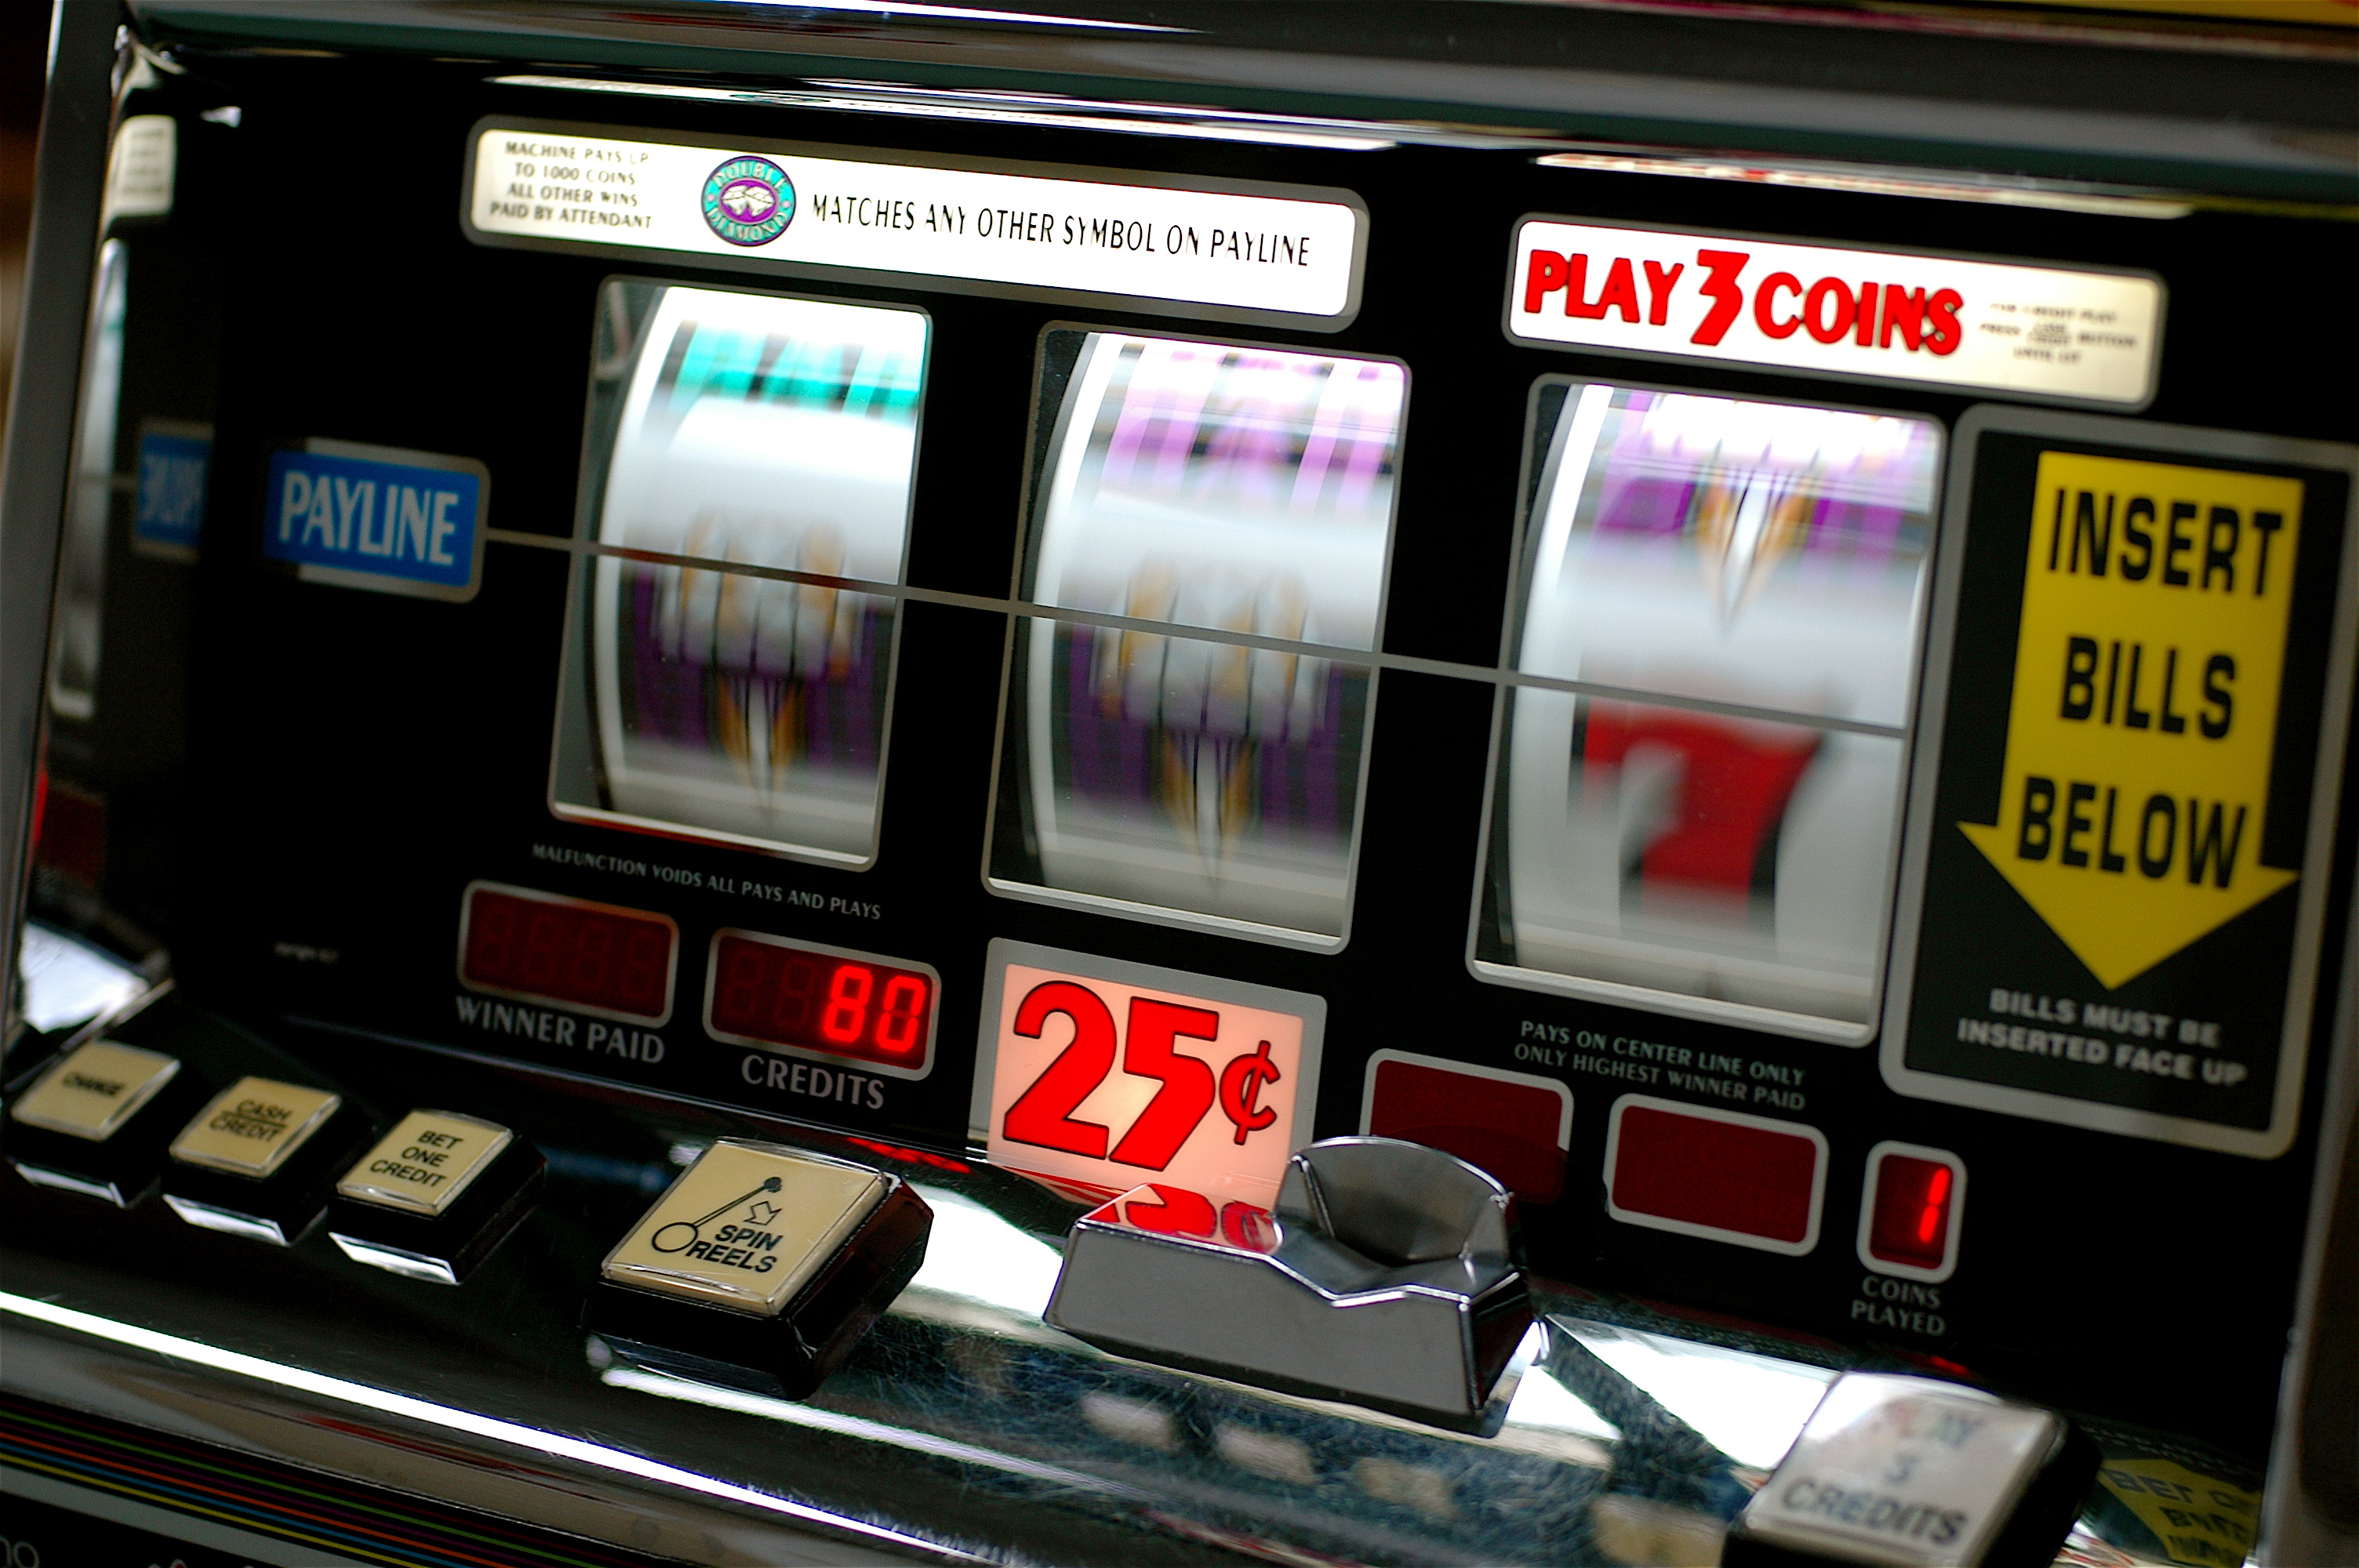 Fermati e arrestati dopo il furto di una slot machine